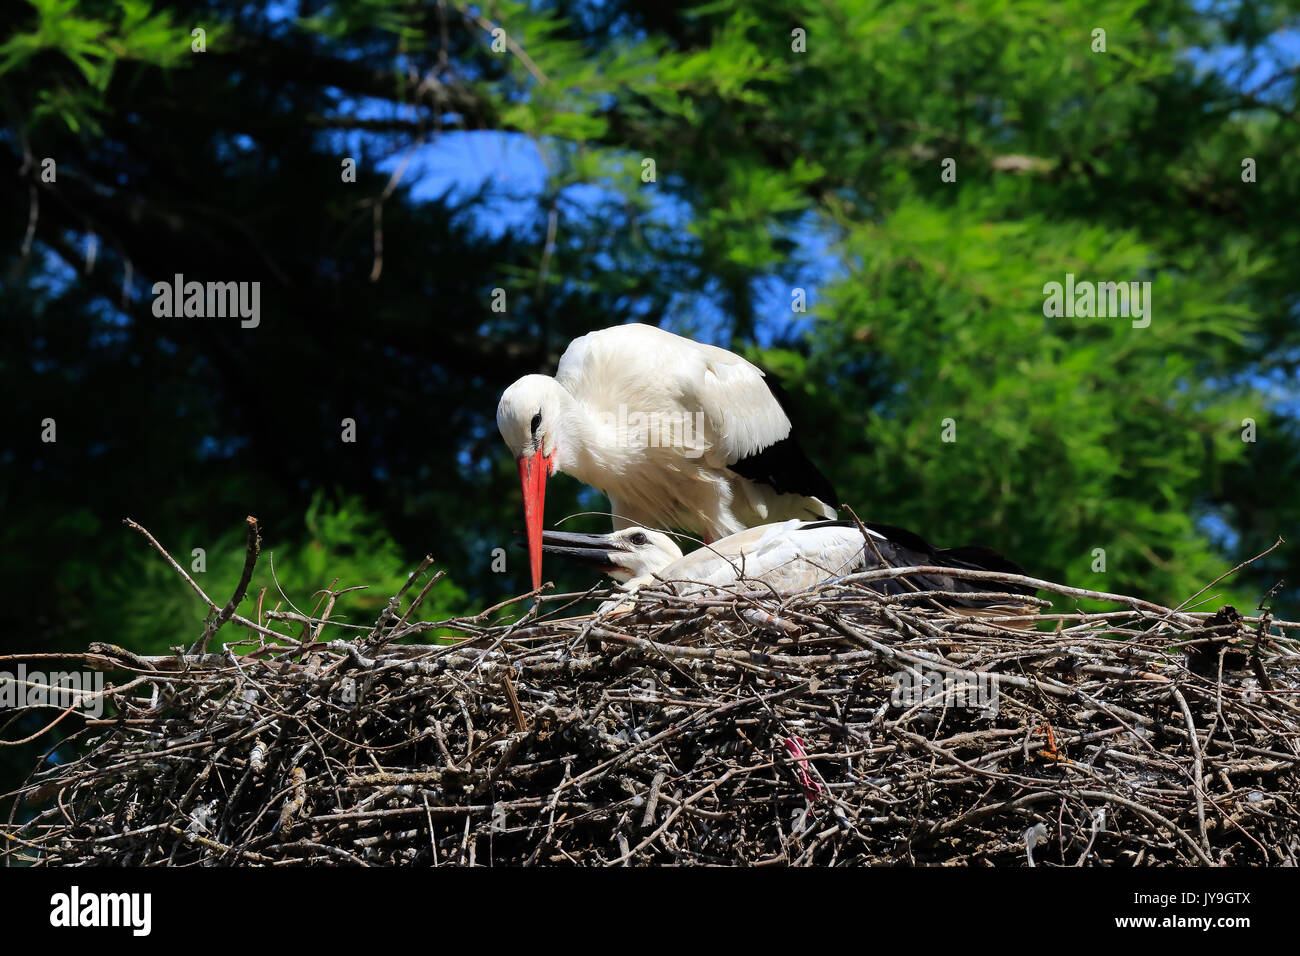 Adult  white stork (Ciconia ciconia) with chick on nest, Basel, Switzerland. Stock Photo